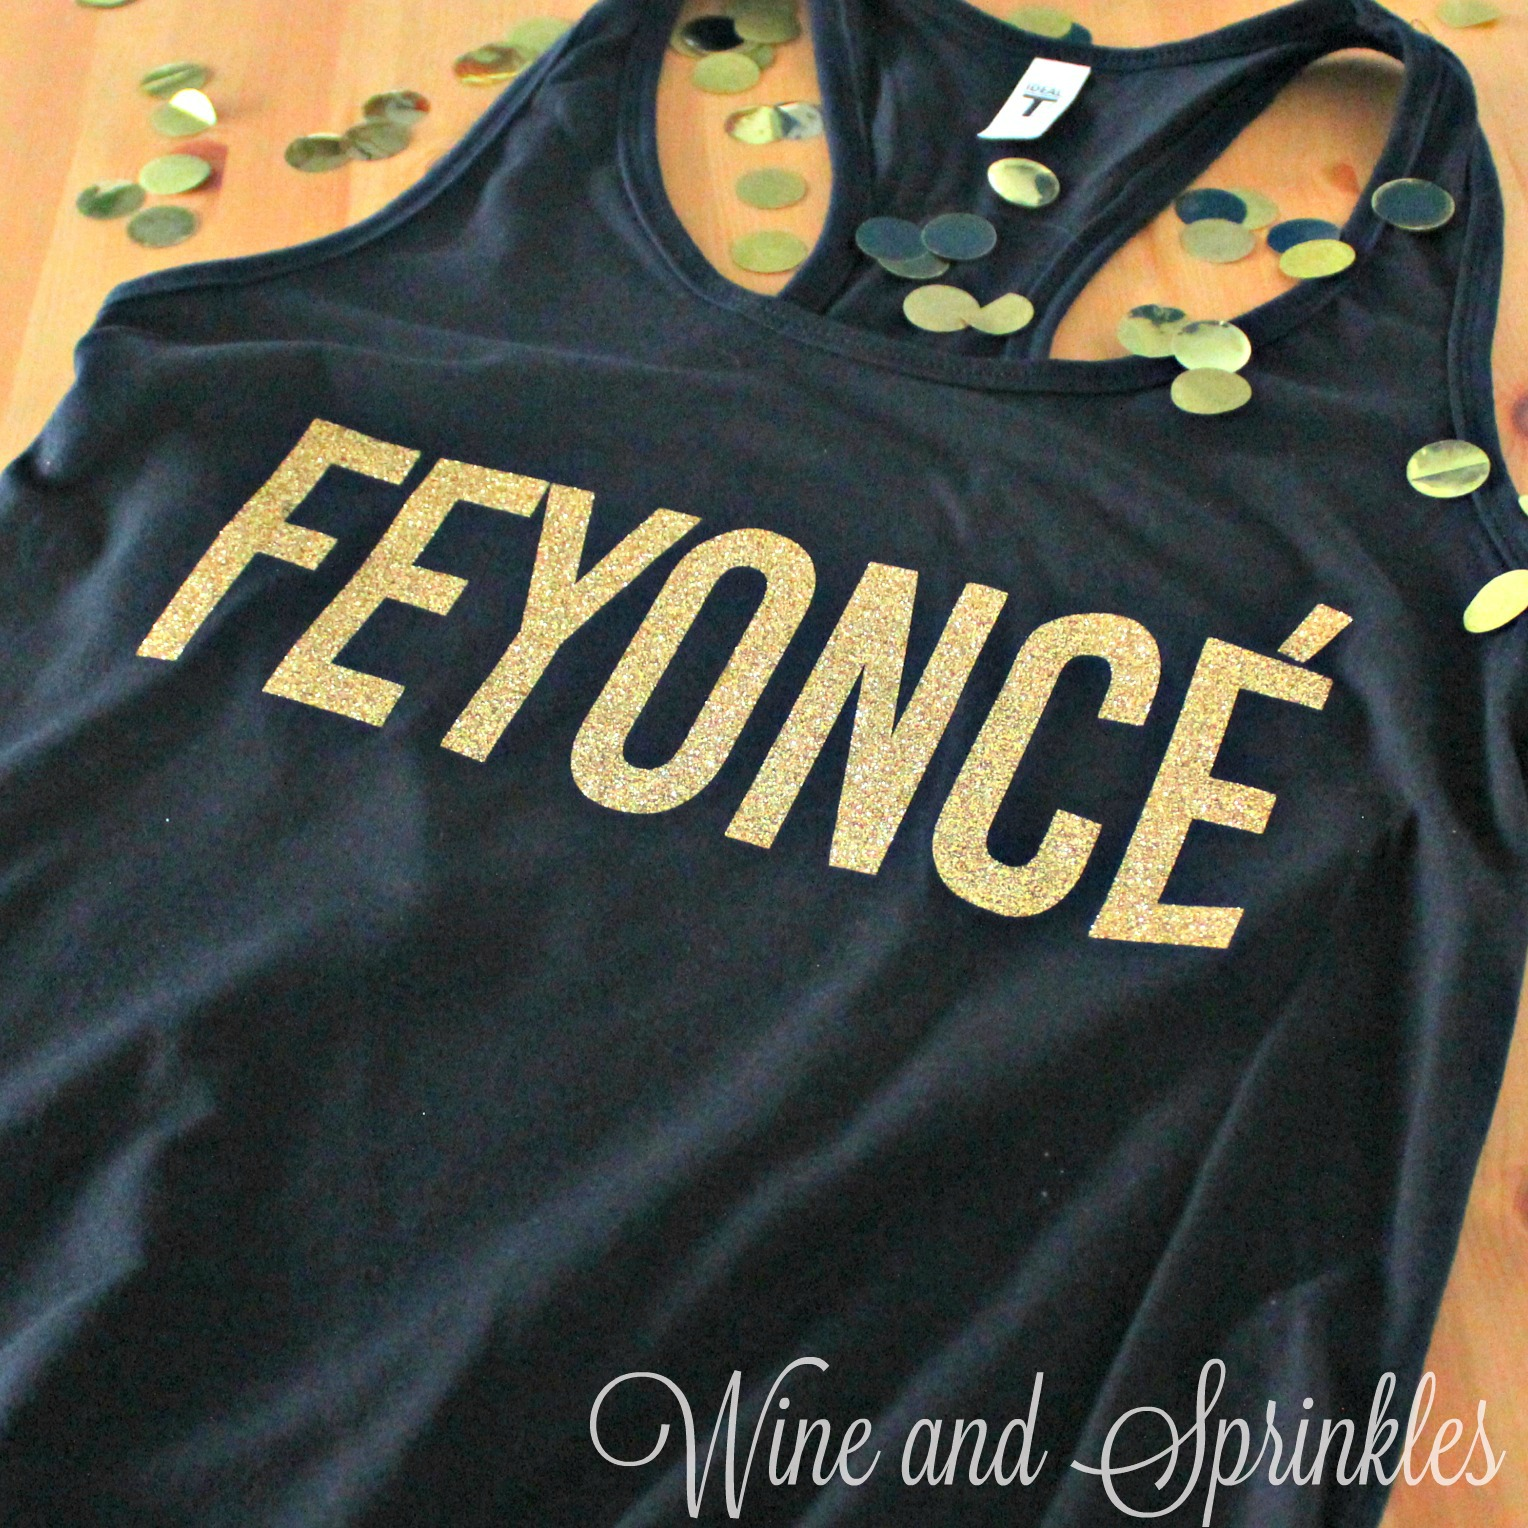 DIY HTV Iron On Feyonce Engagement Tank Top #feyonce #justengaged #diywedding